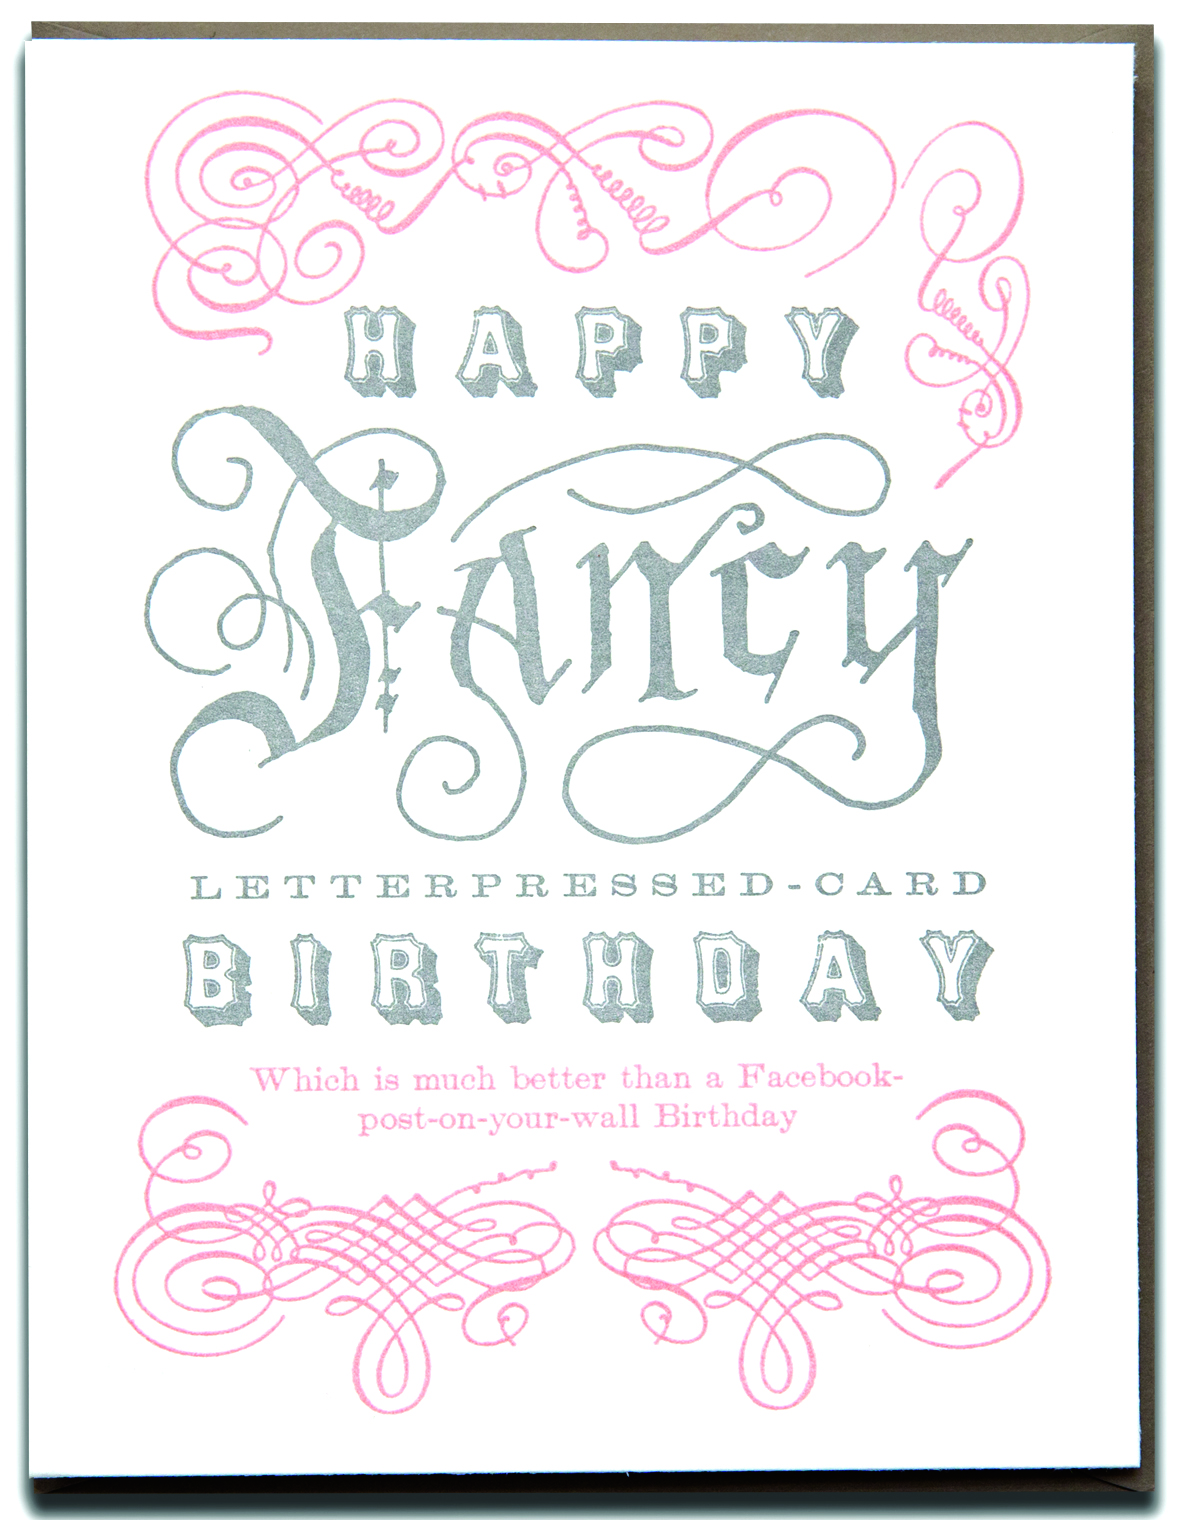 Happy fancy letterpressed card birthday which is much better than a happy fancy letterpressed card birthday which is much better than a facebook post on your wall birthday letterpress printed greeting card m4hsunfo